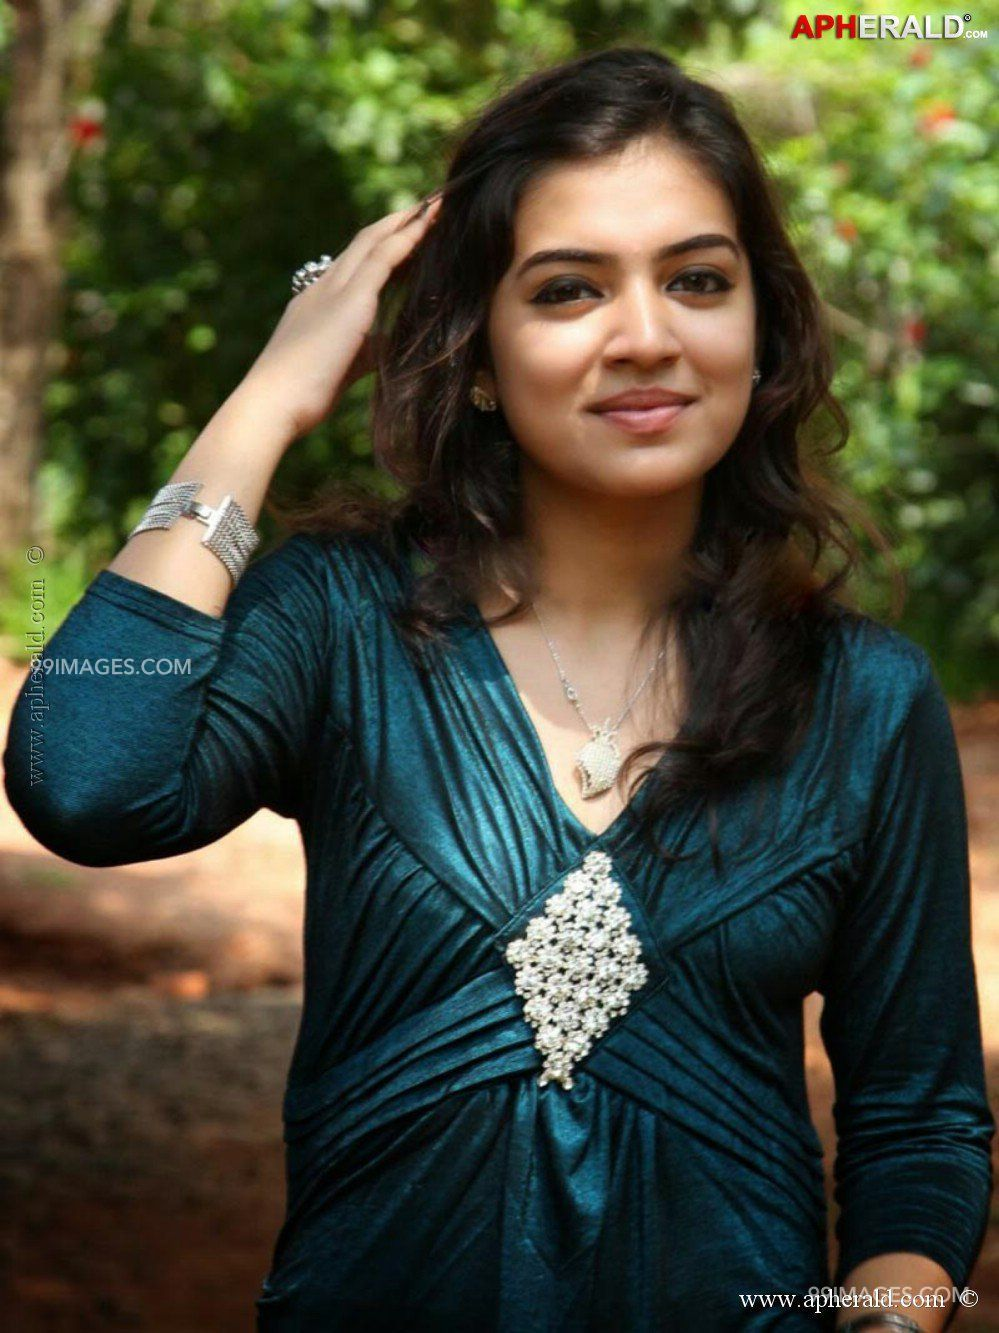 Nazriya Nazim HD Wallpapers (Desktop Background / Android / iPhone) (1080p, 4k) (145367) - Nazriya Nazim